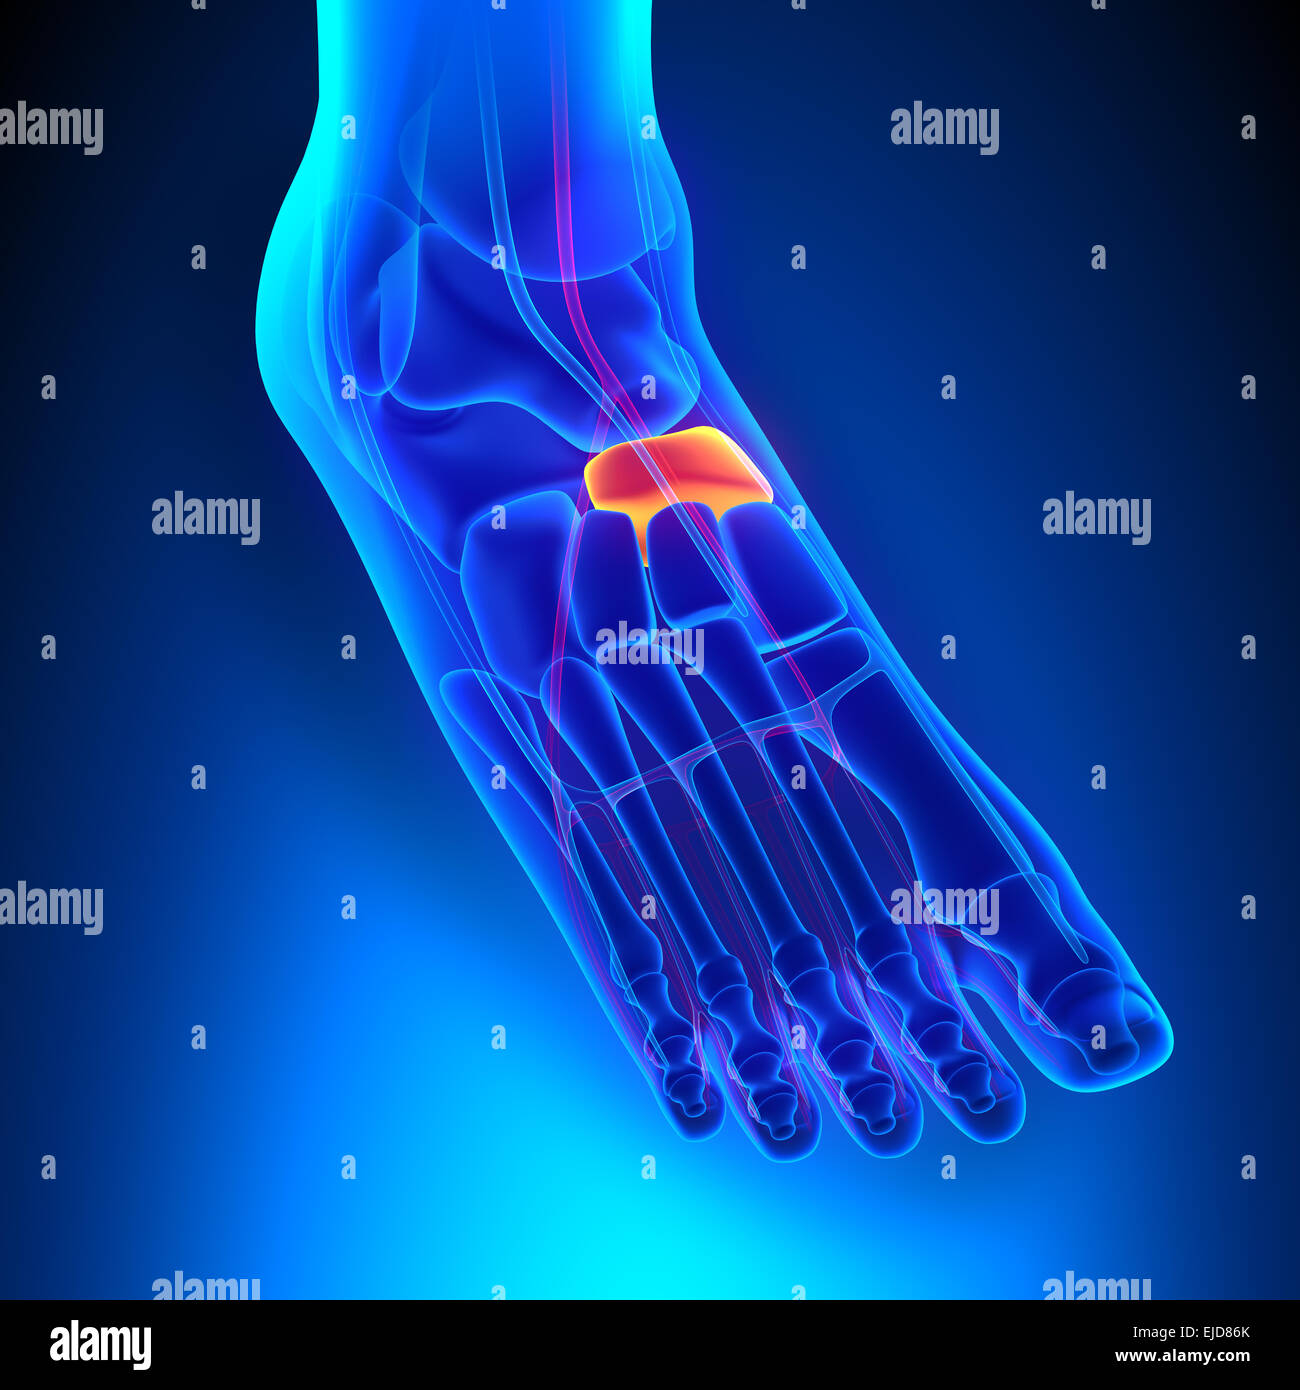 Navicular Bone Anatomy with Circulatory System Stock Photo: 80197115 ...